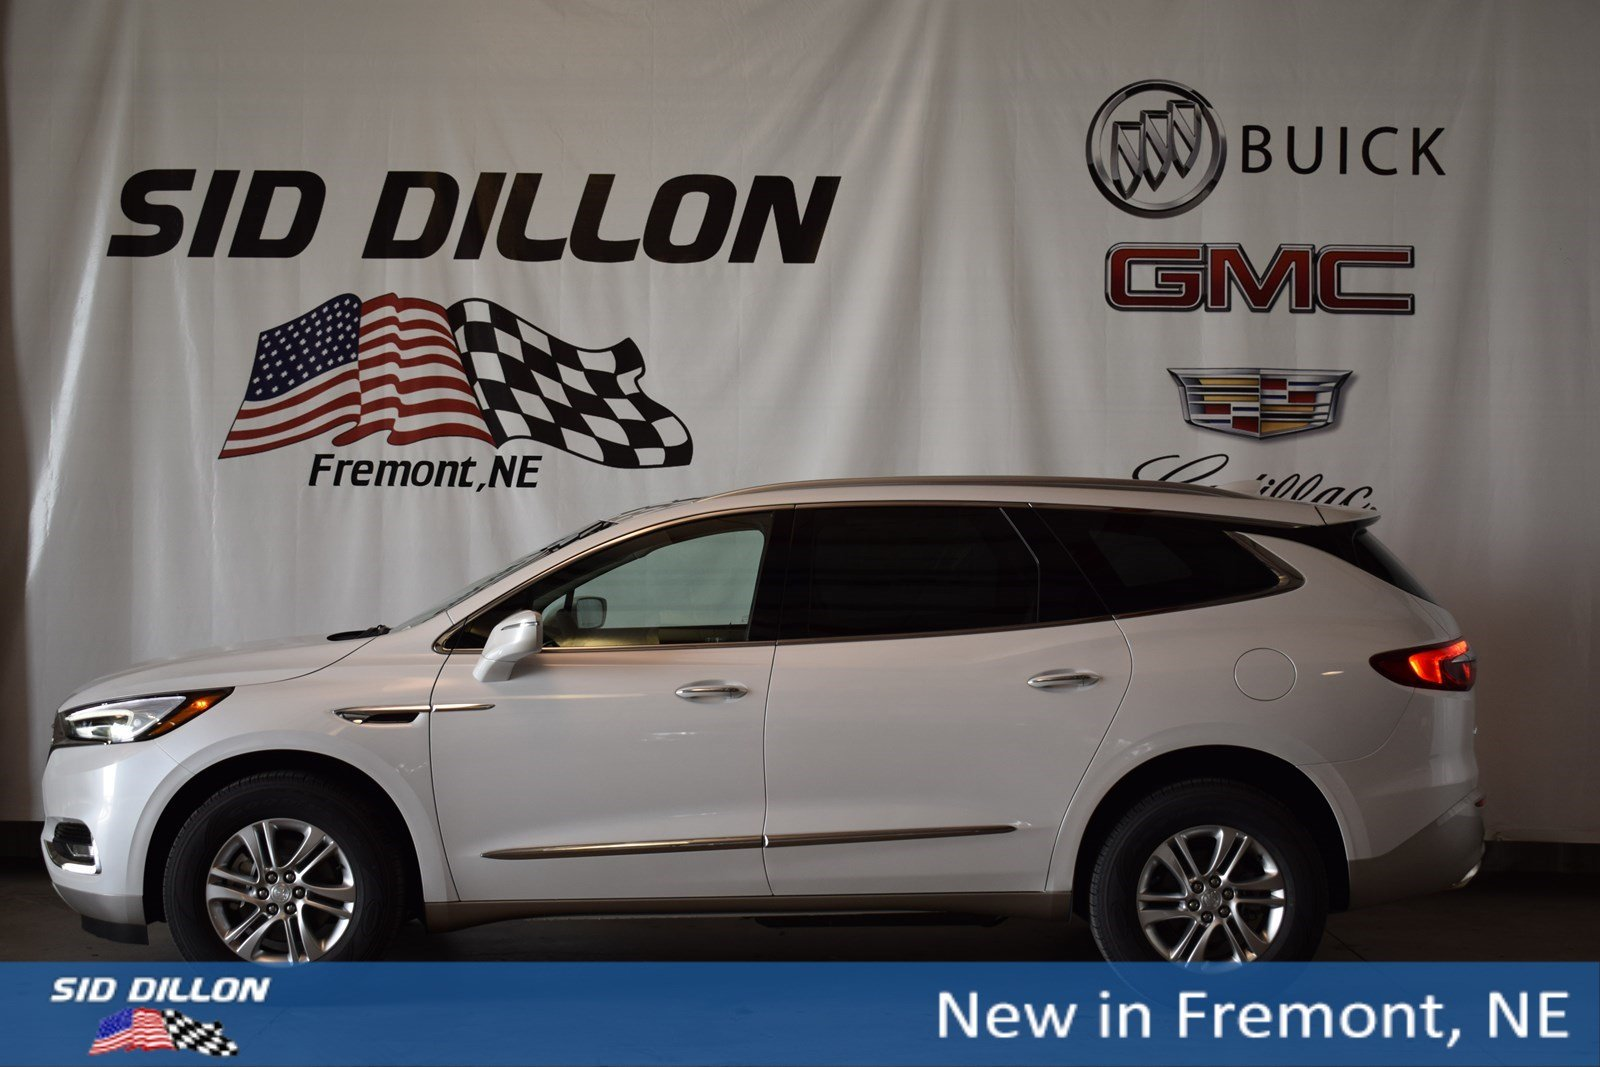 awd in enclave suv inventory dillon buick sid new envoy fremont essence